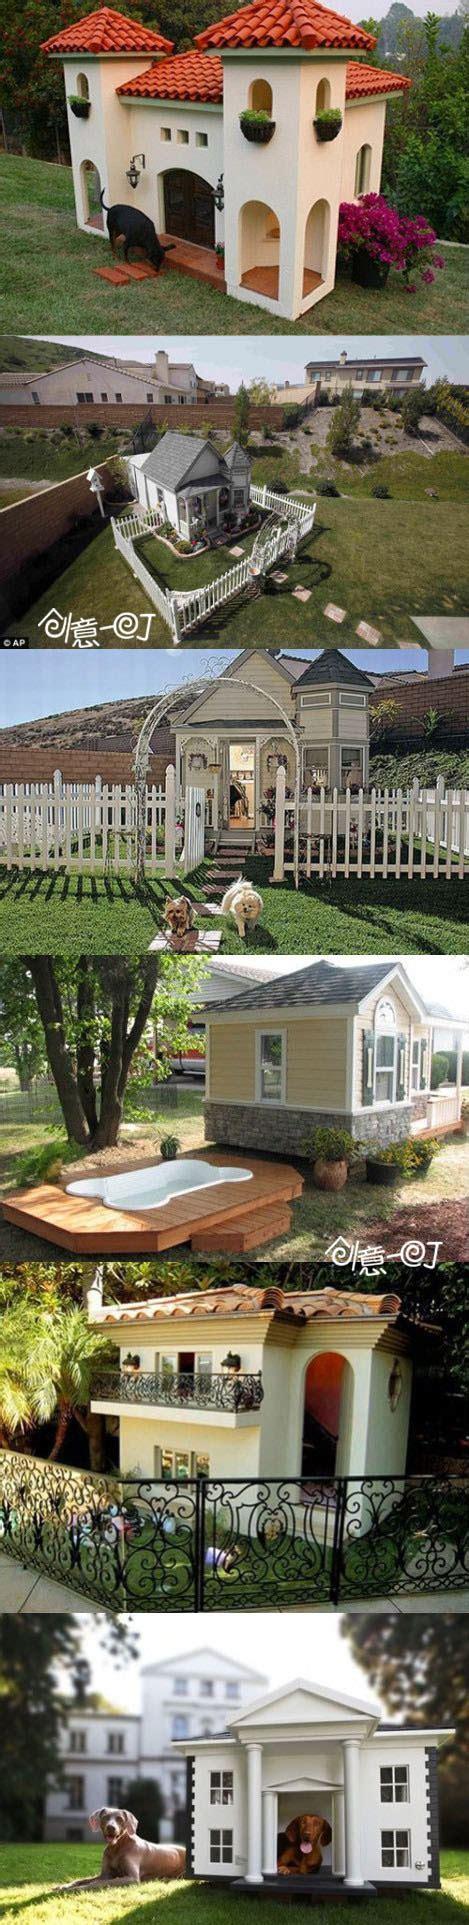 dog houses for pitbulls the lodge dog house with spa love my pitbulls pinterest dog houses lodges and